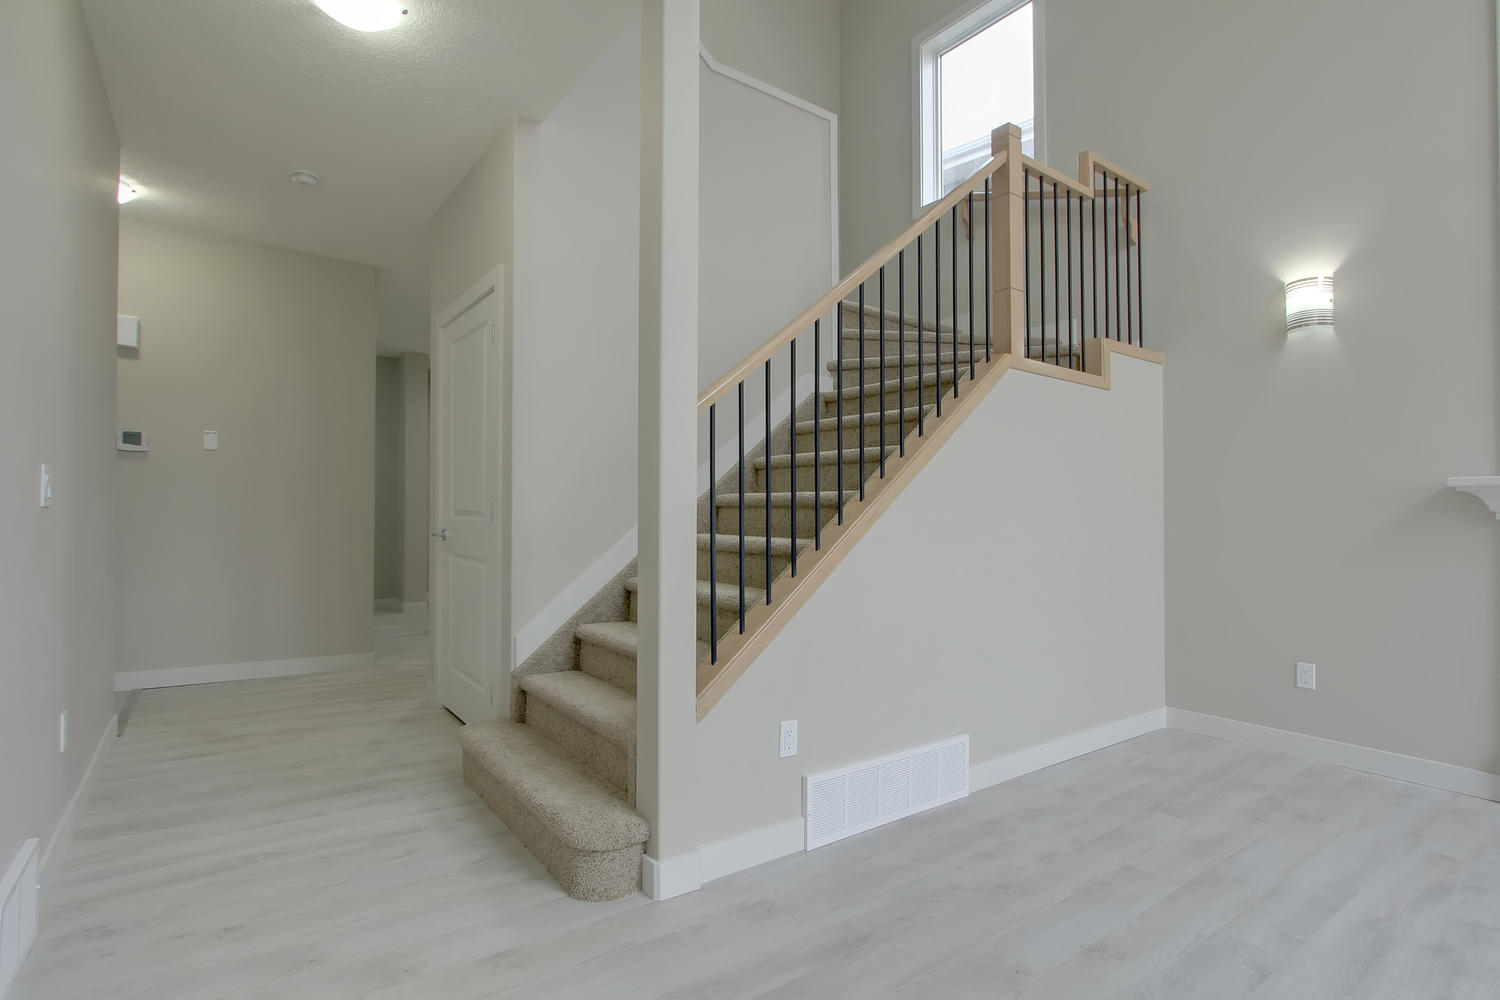 6606 53 Ave Beaumont AB T4X-large-010-85-Staircase-1500x1000-72dpi.jpg